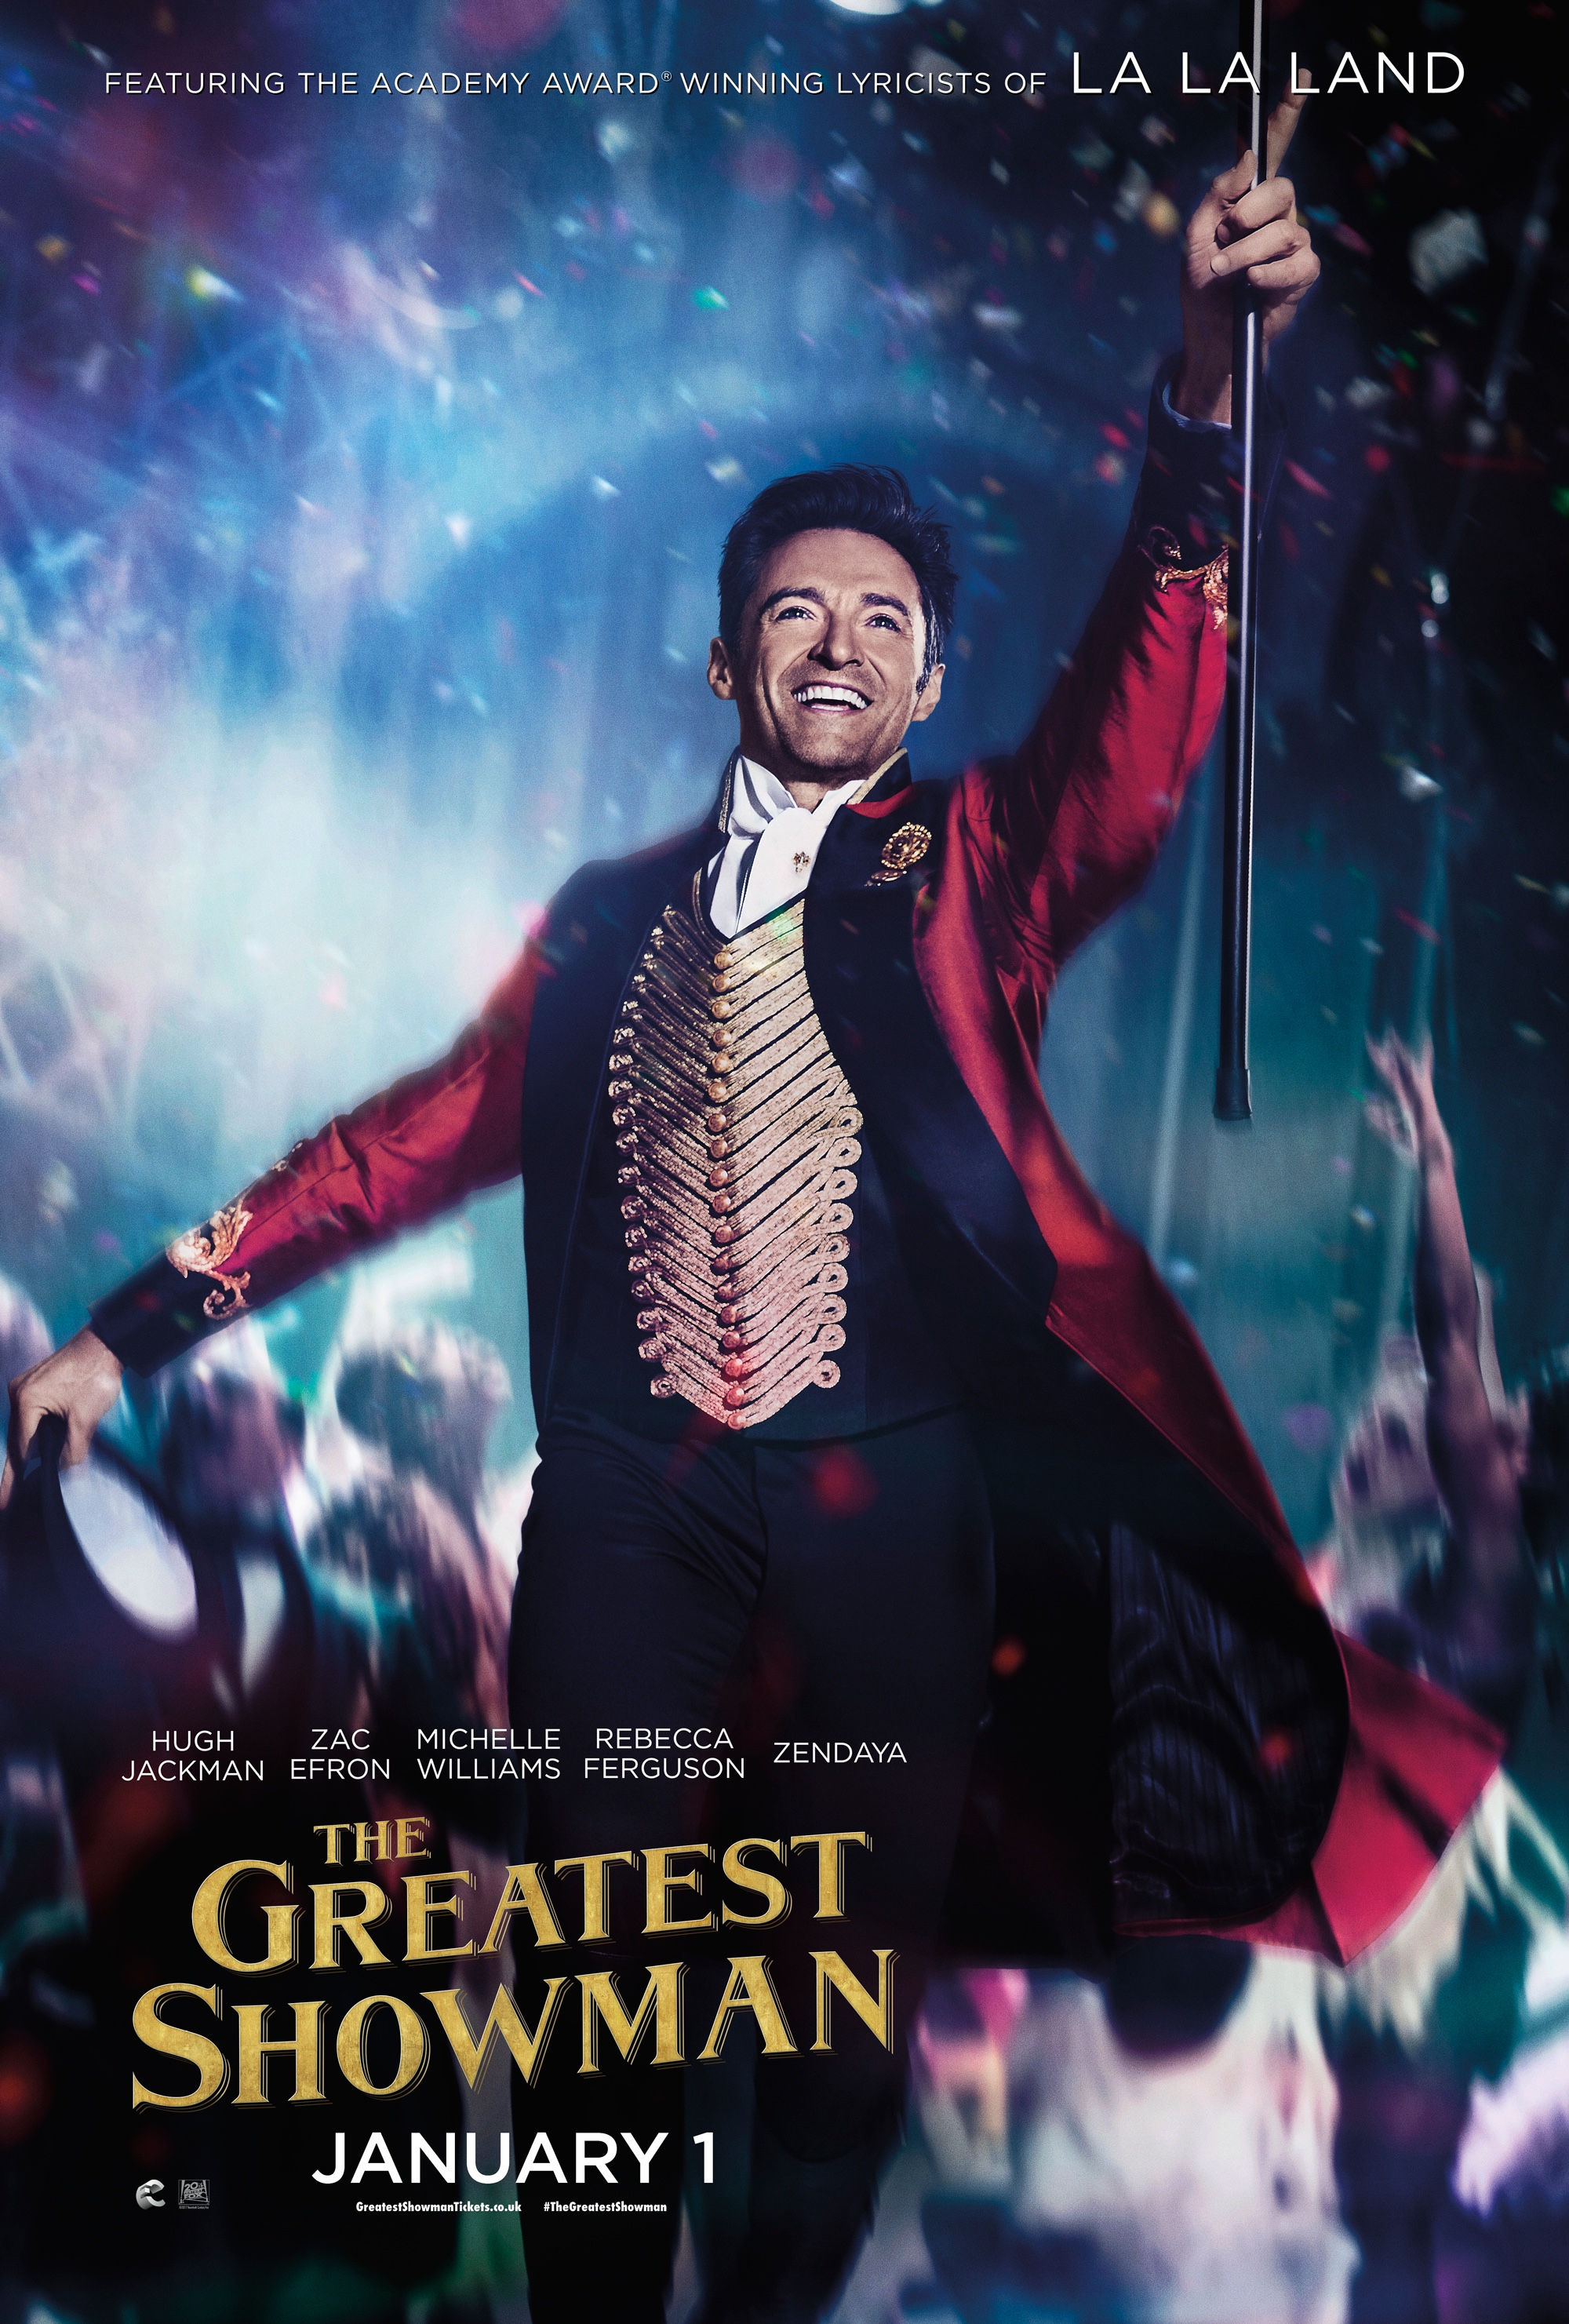 The Greatest Showman (20th Century Fox)  - VocalistWINNER 3 Golden GlobesNOMINEE Academy Award In theaters